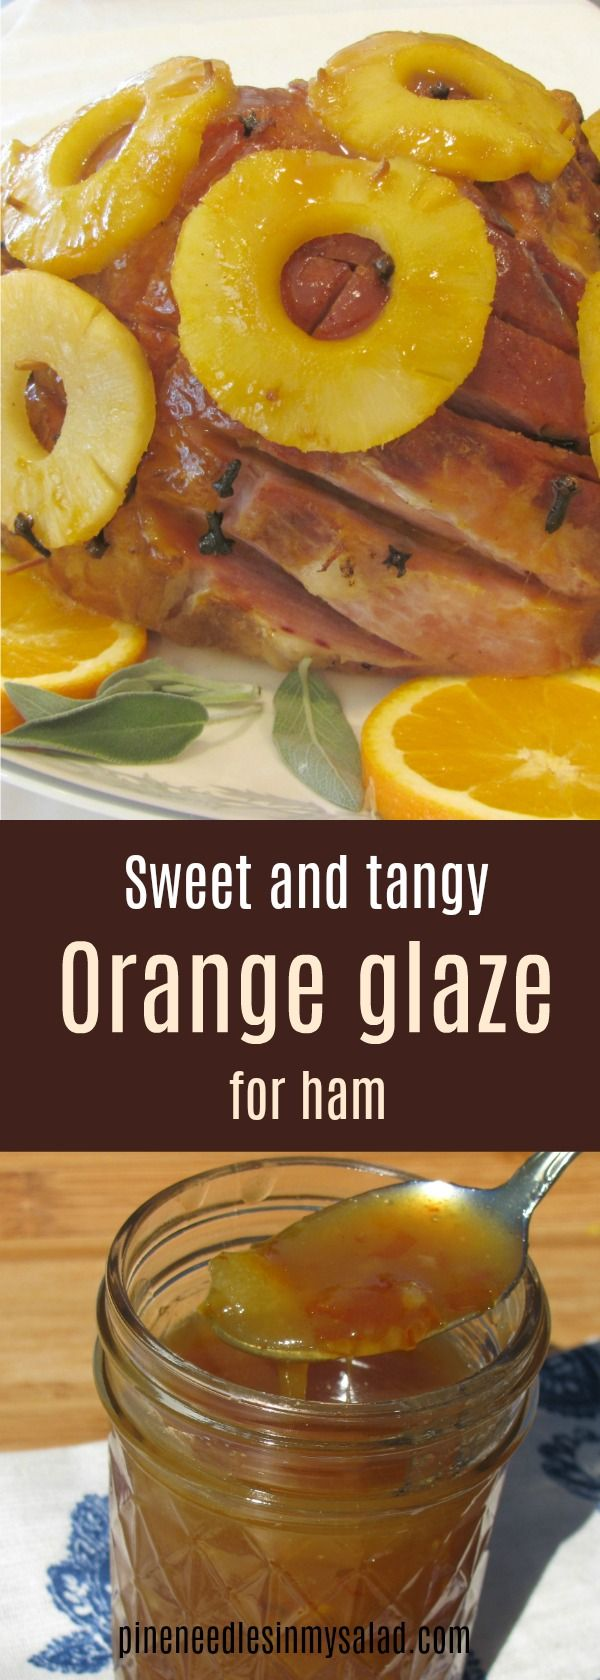 This orange glaze for ham with a hint of bourbon is the perfect flavor combination for a sweet and tangy roast ham. #Easter #ham